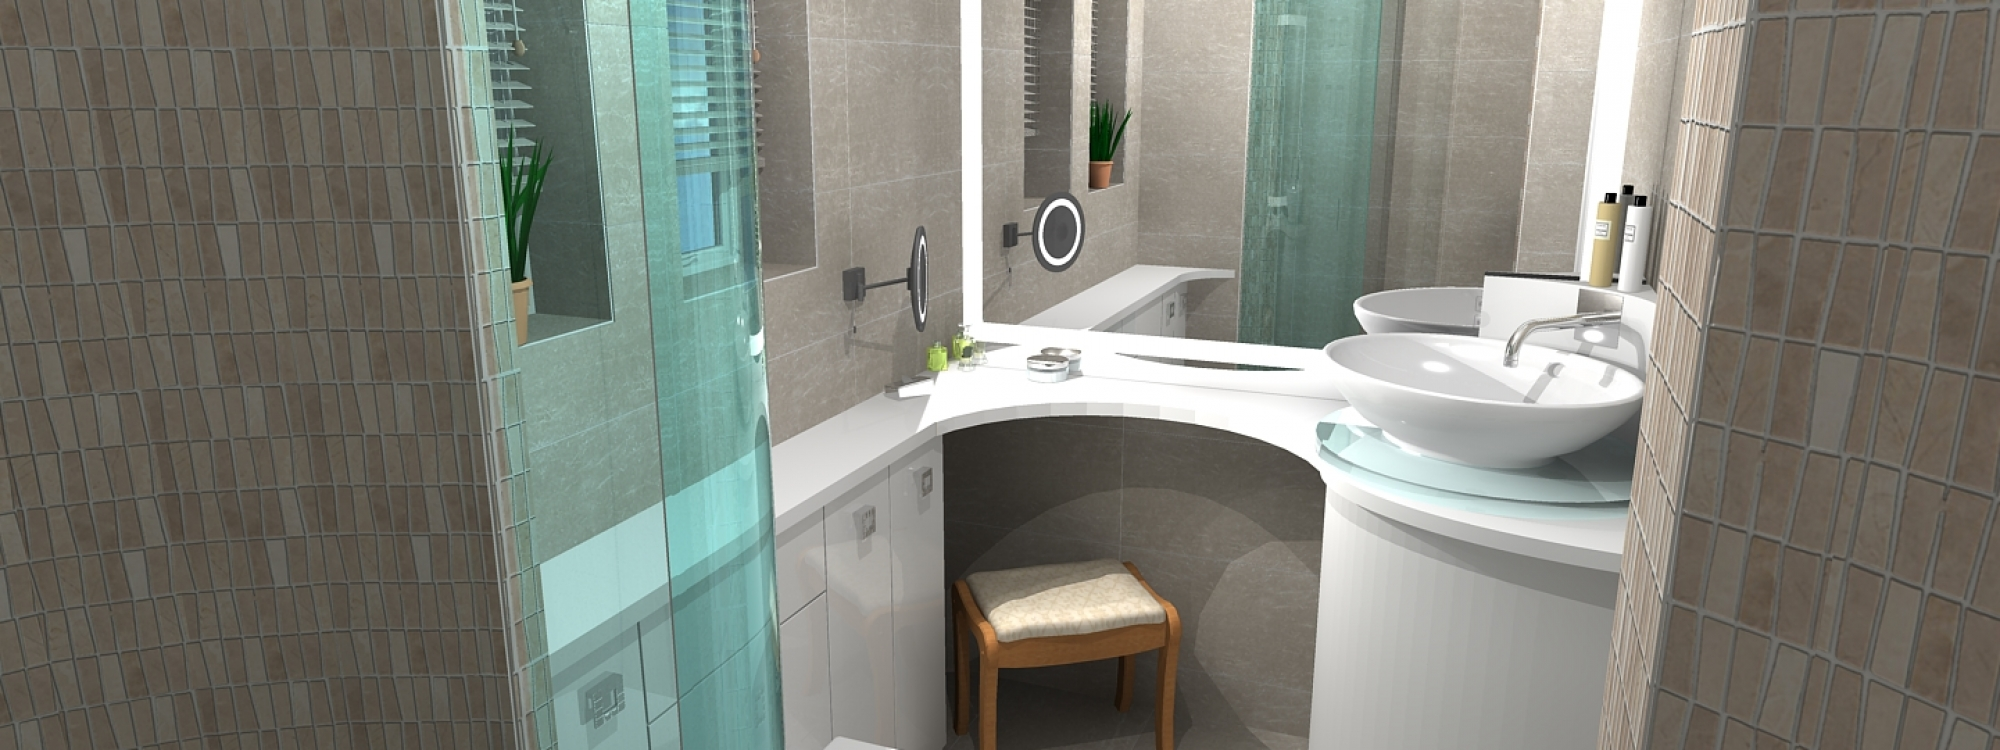 For leading bathroom design choose more bathrooms leeds for Bathroom design leeds